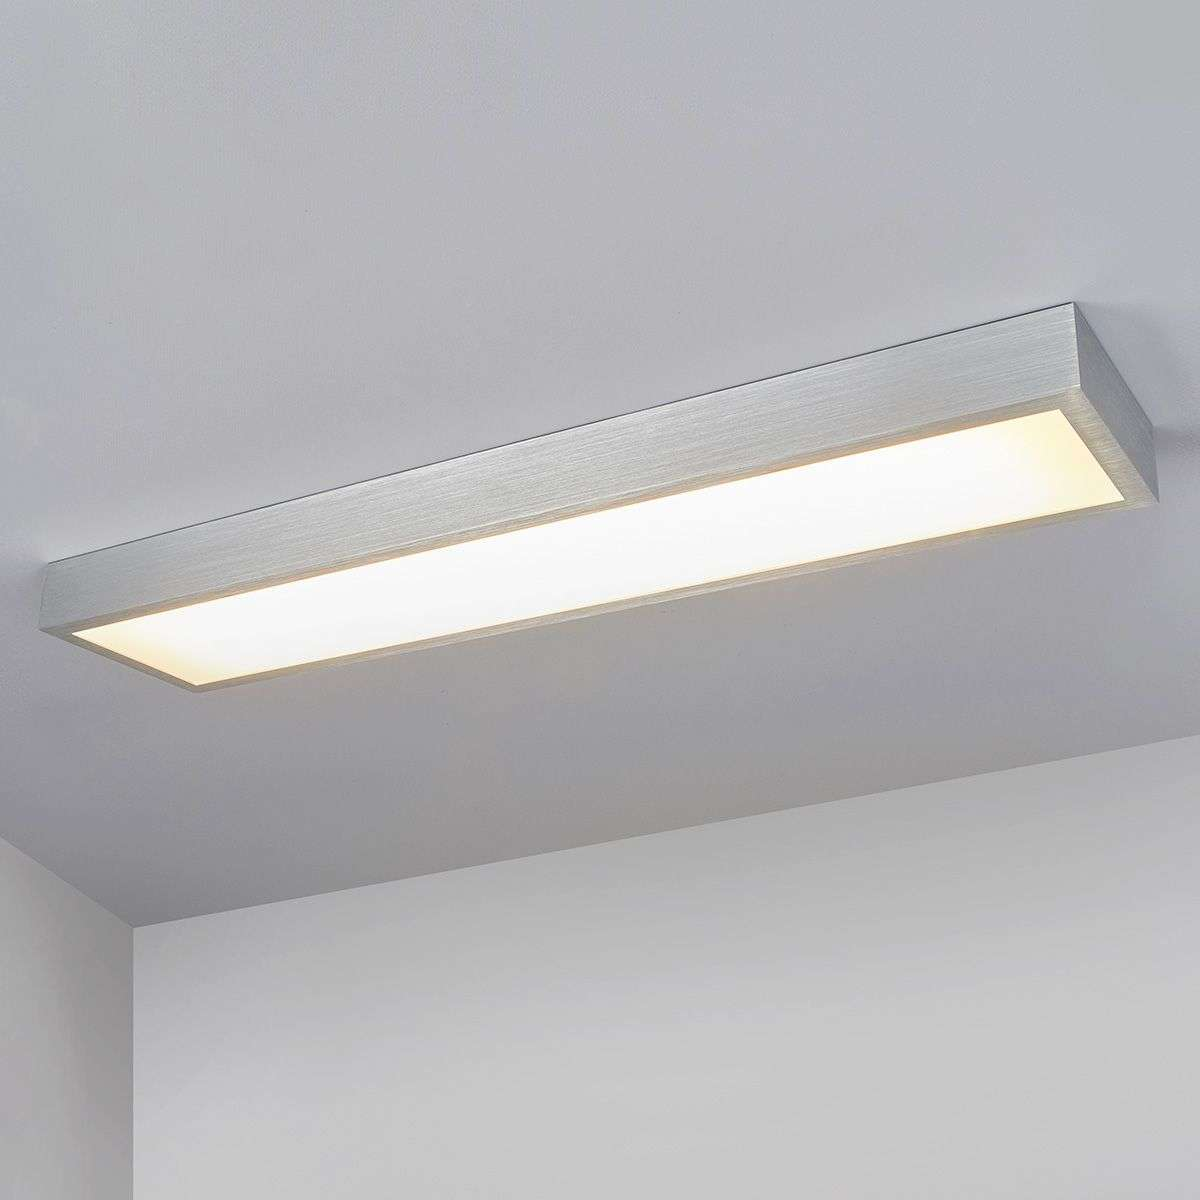 Esila led ceiling light for Deckenleuchten led flur